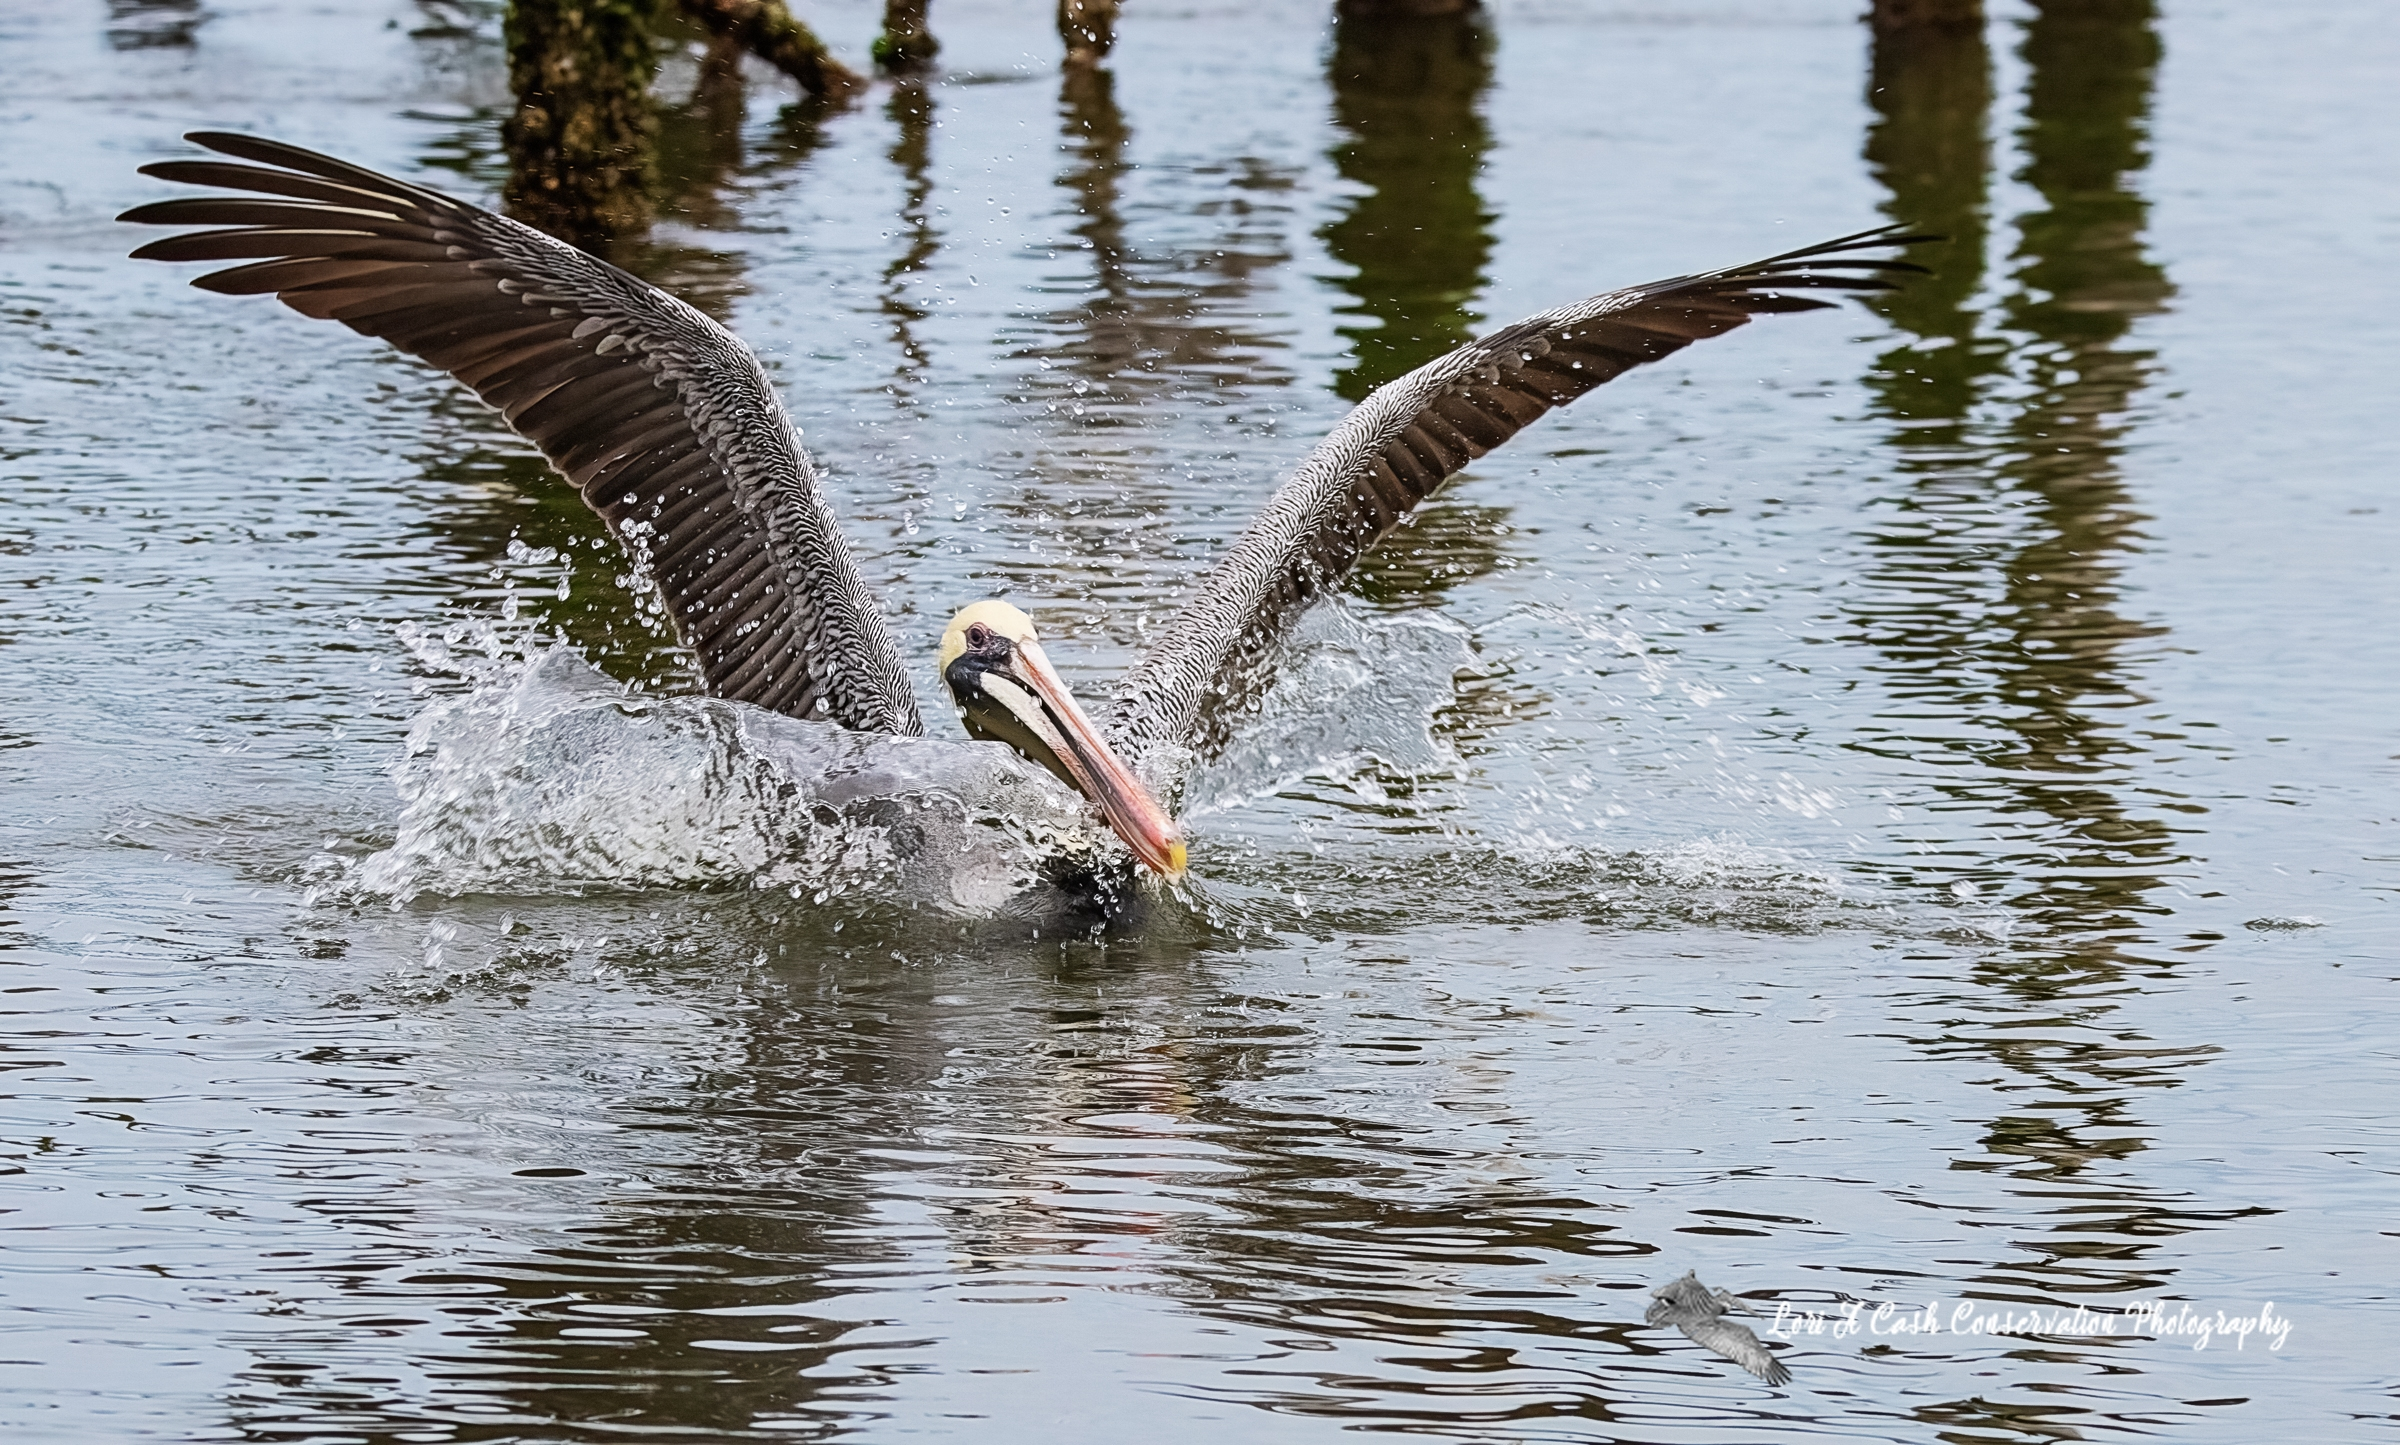 Adult brown pelican landed in the water near the pilings in Mill Creek at the Phoebus Waterfront Park in Hampton, Virginia.